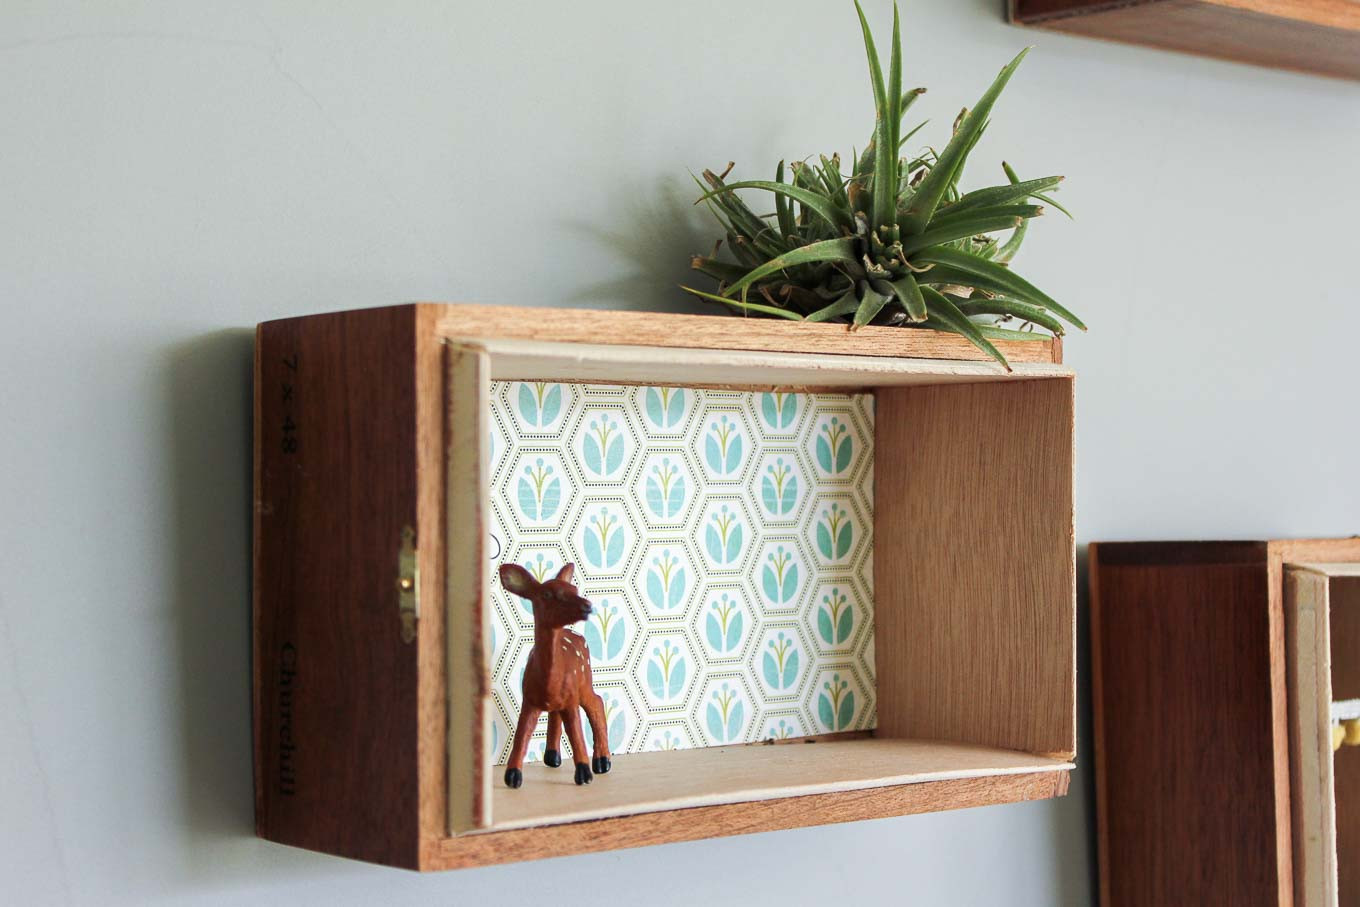 Best ideas about DIY Box Shelf . Save or Pin Super Easy DIY Floating Box Shelves From Cigar Boxes Now.